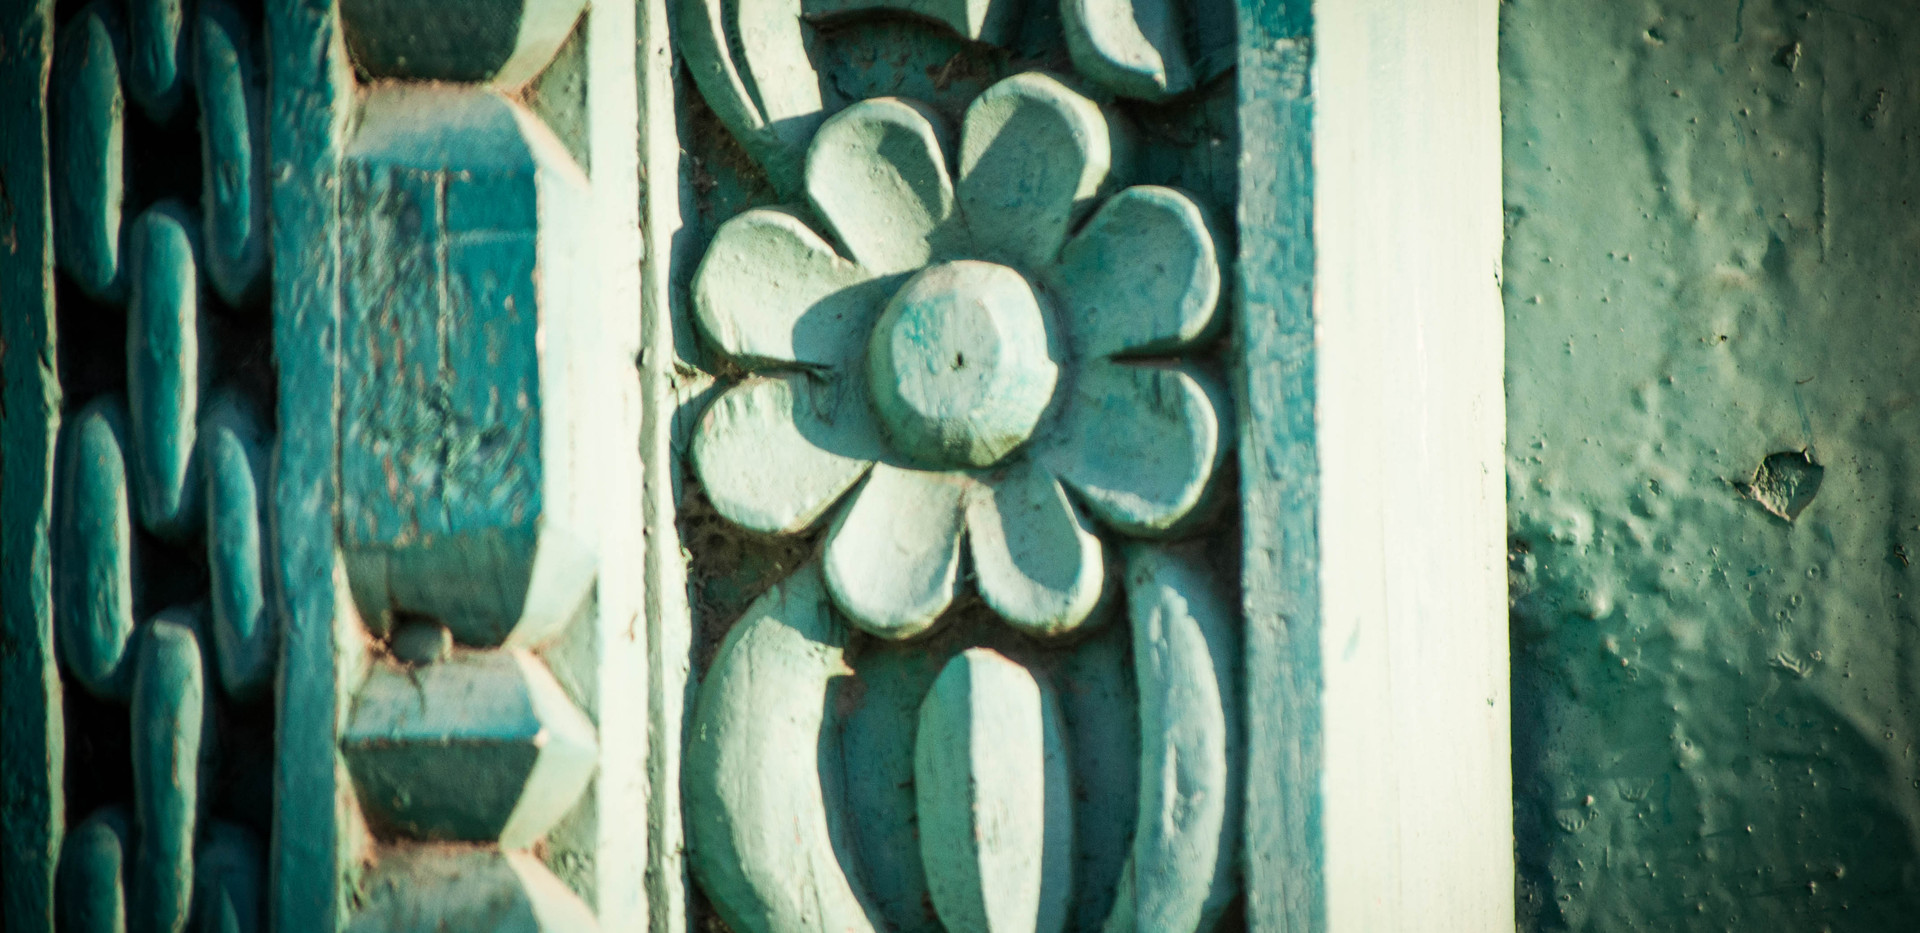 flower detail on door in stone town